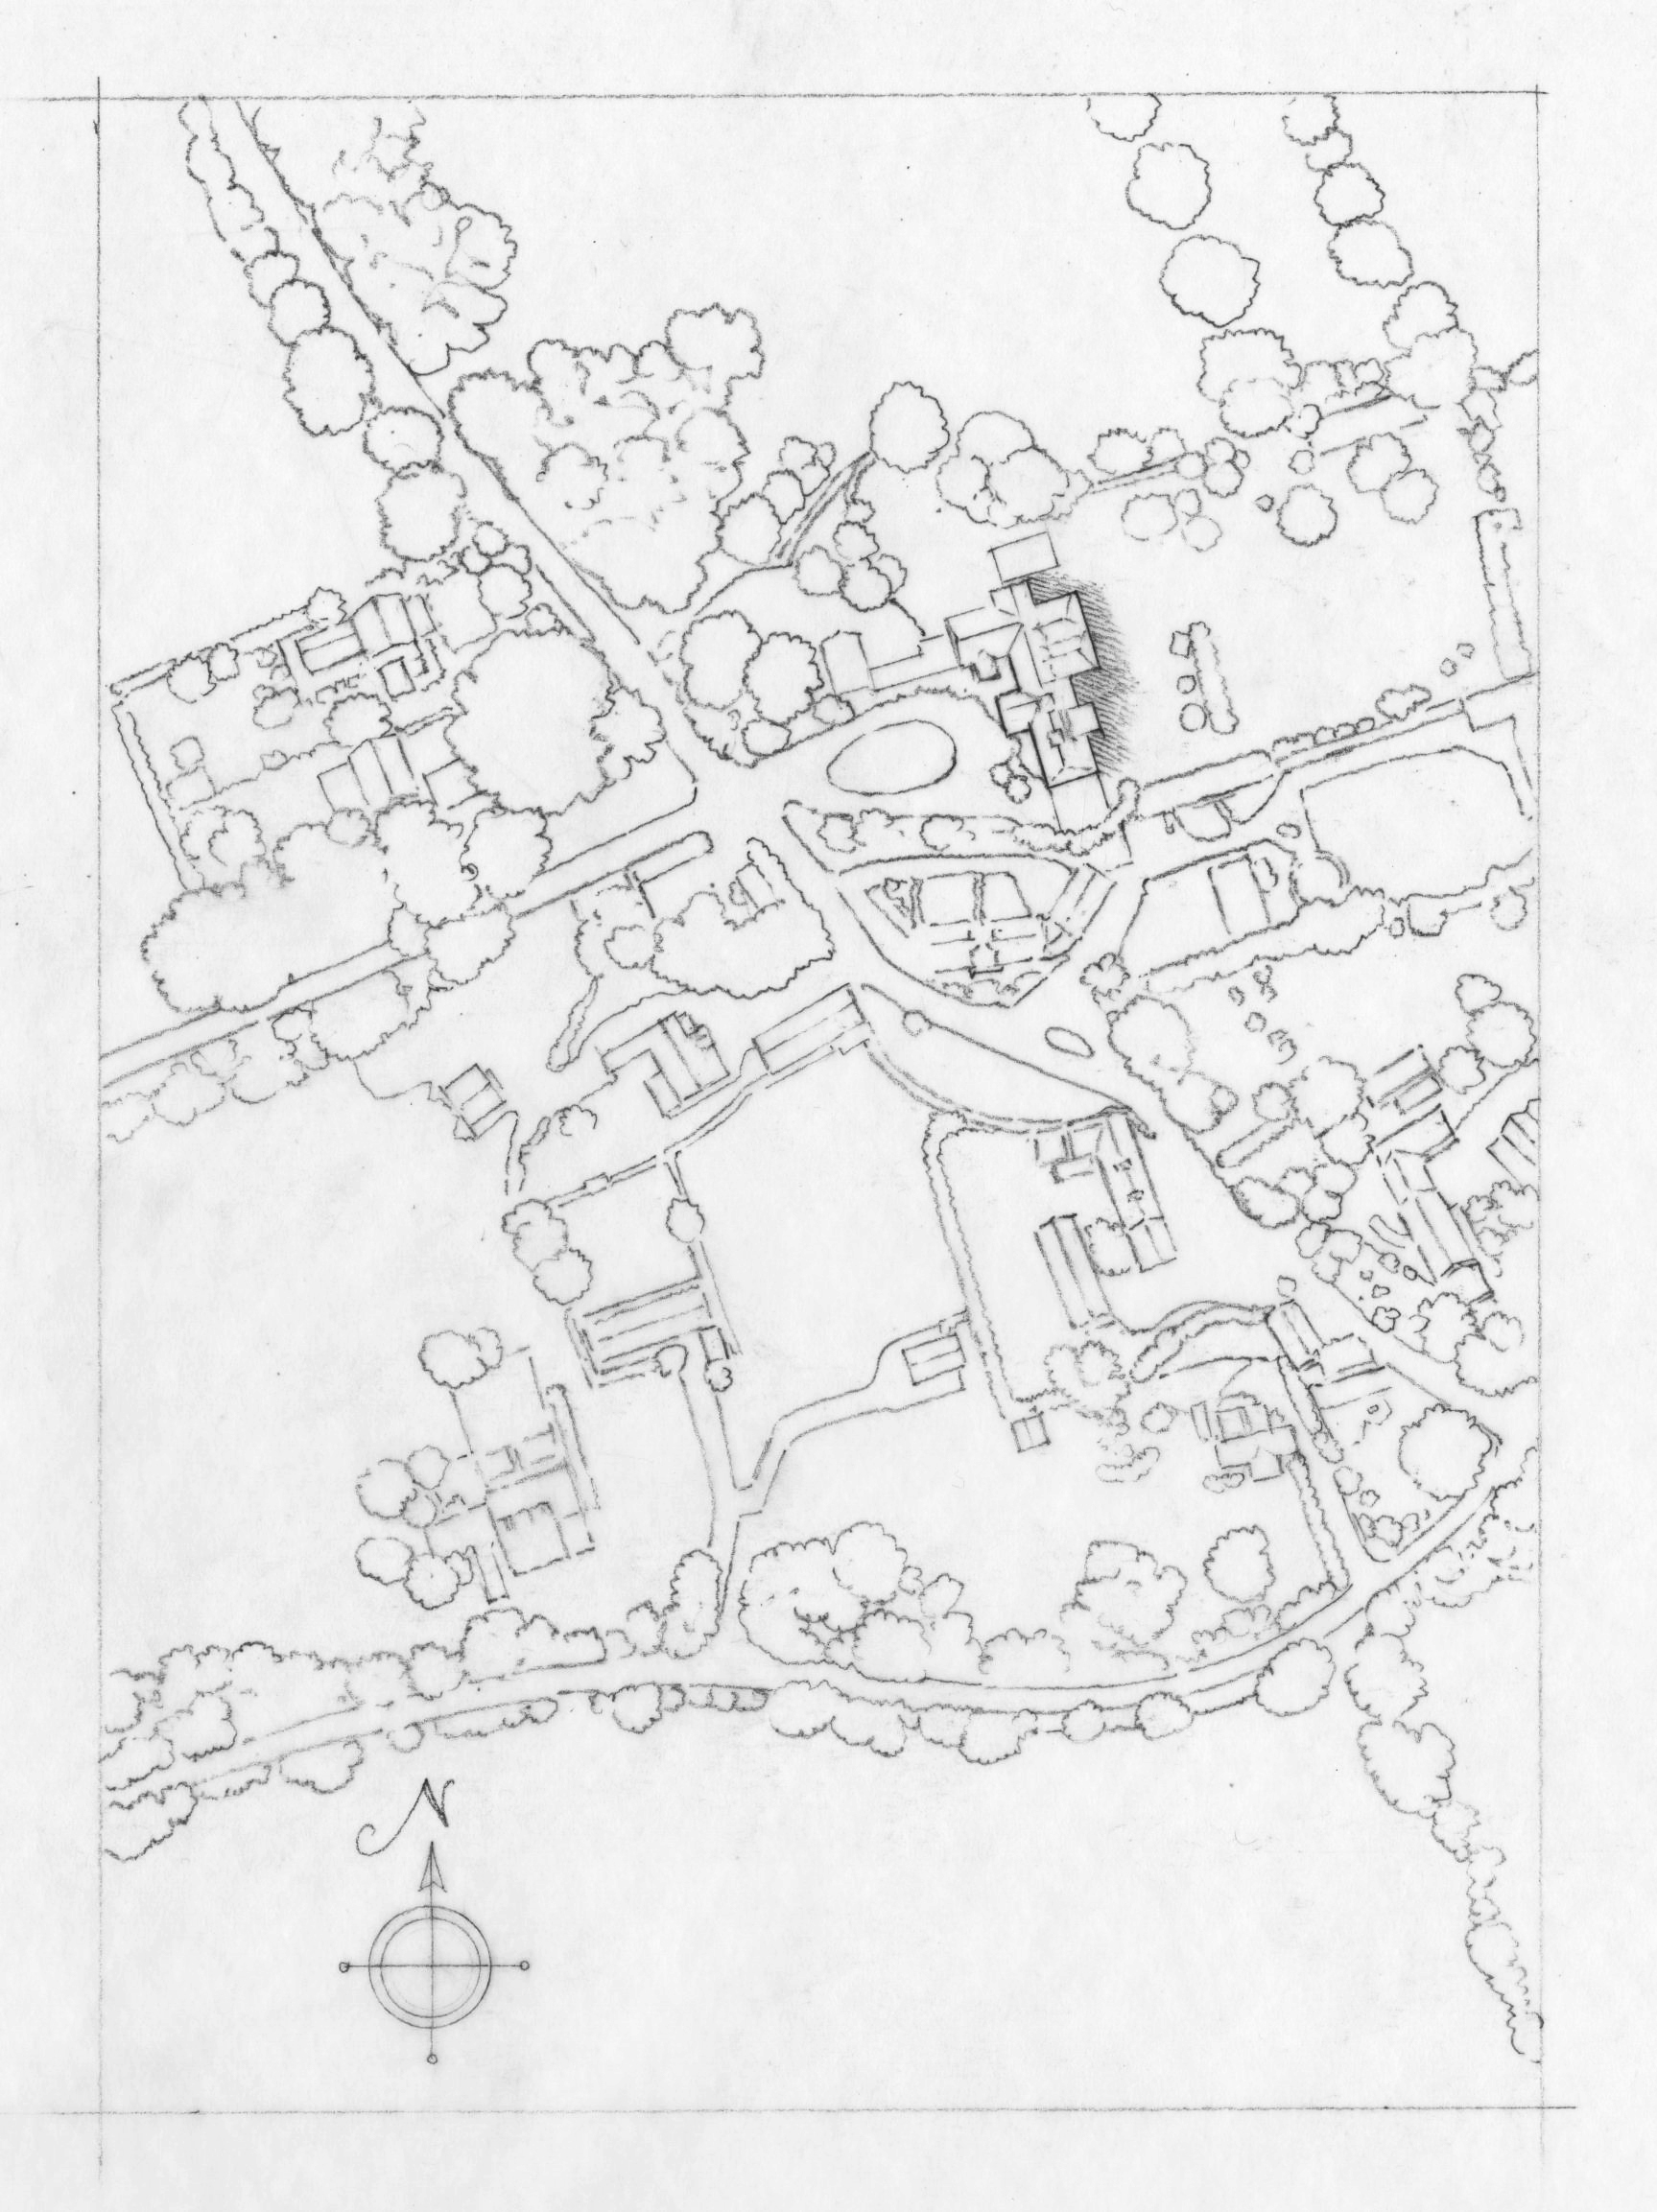 Mauresbury map revised sketch 002.jpg